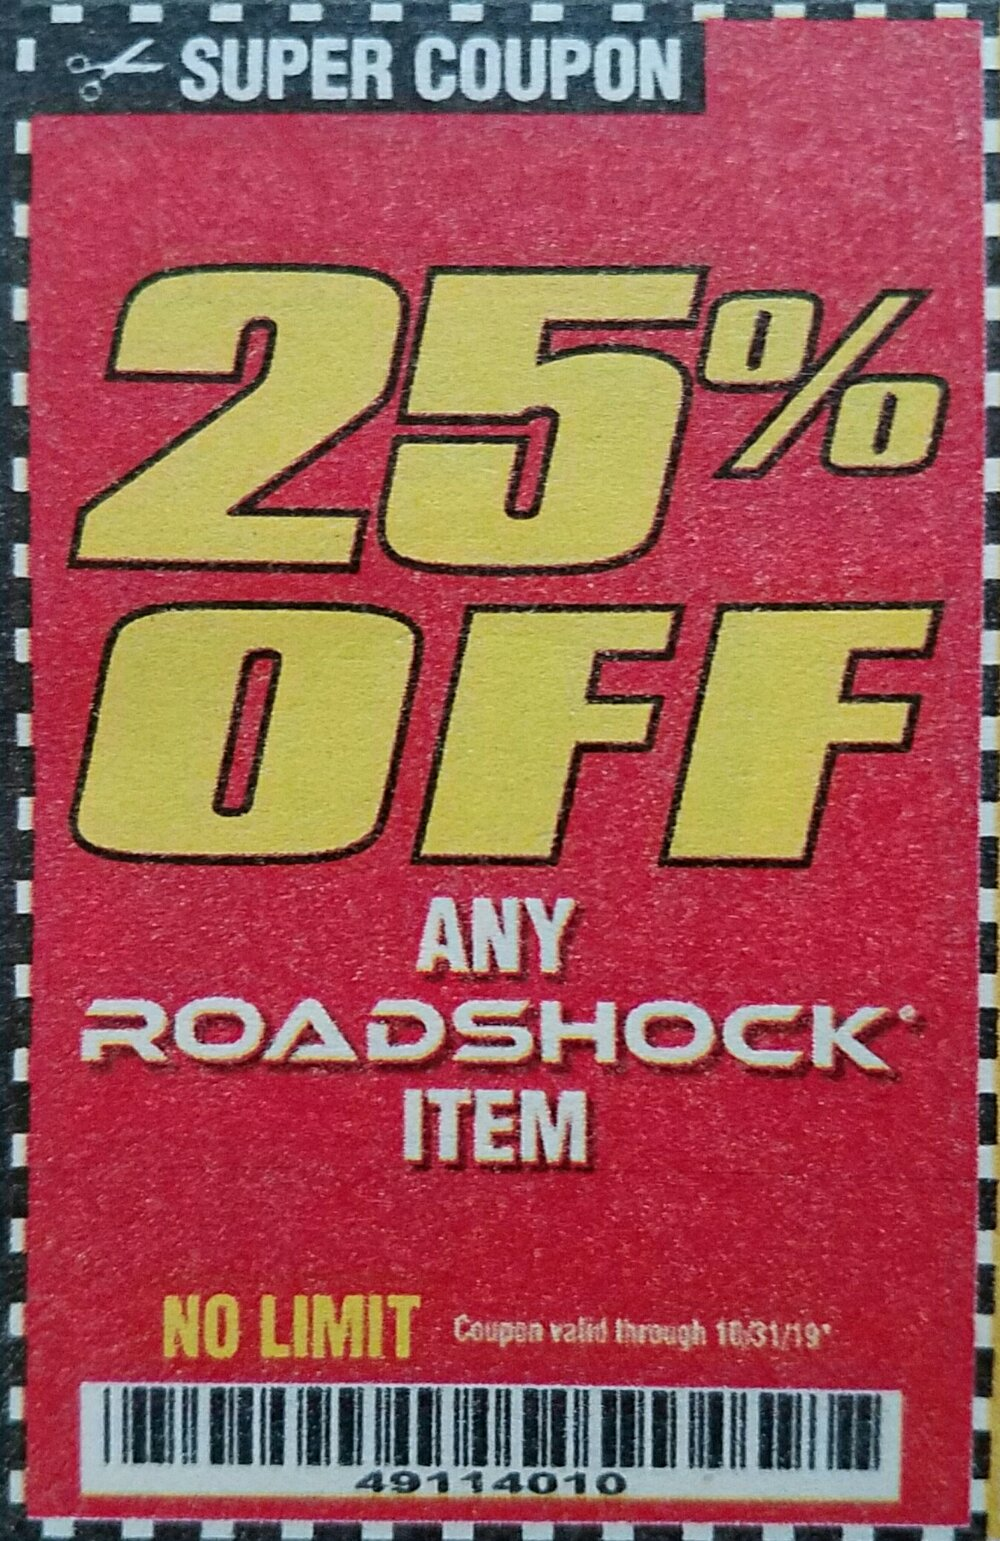 Harbor Freight Coupon, HF Coupons - 25% off any ROADSHOCK item